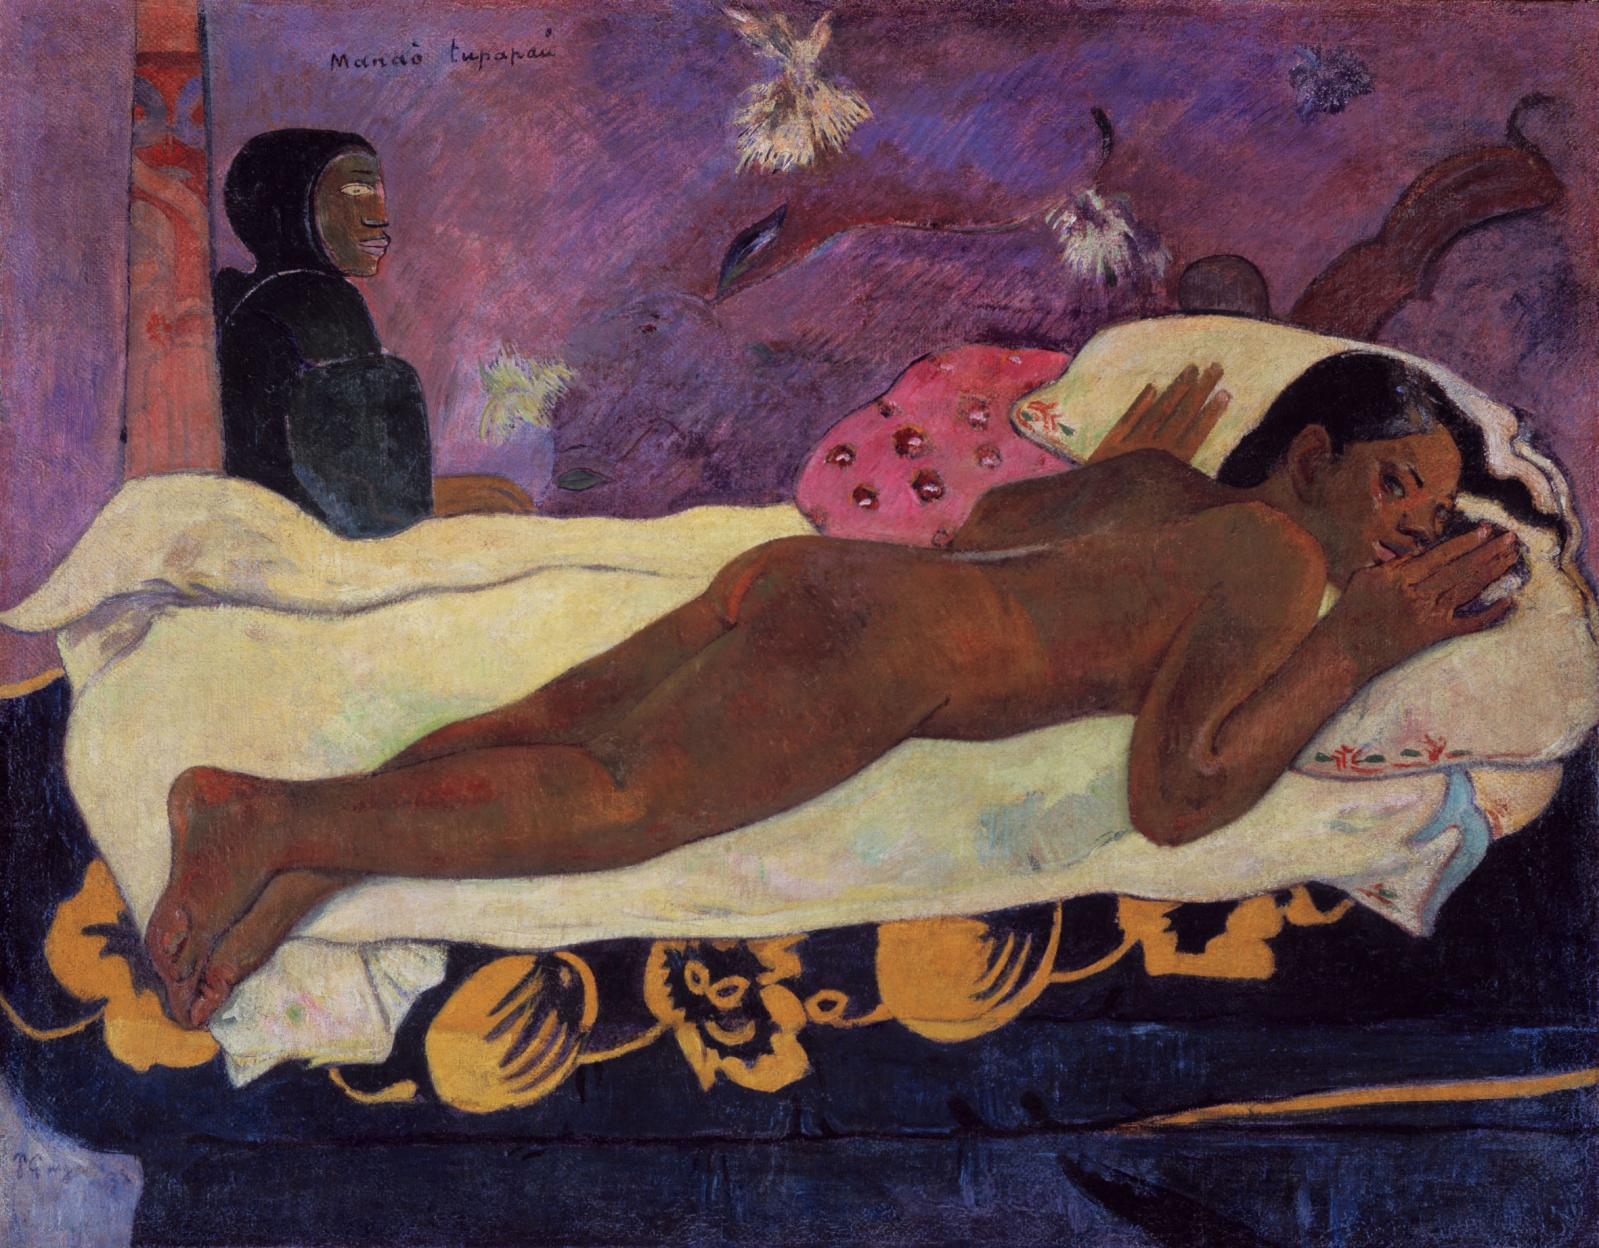 "Paul Gauguin (1848-1903), ""Manao tupapau"" (The Spirit Watches, aka Spirit of the Dead Watching), 1892, oil on jute canvas mounted on canvas, 73 x 92 c"